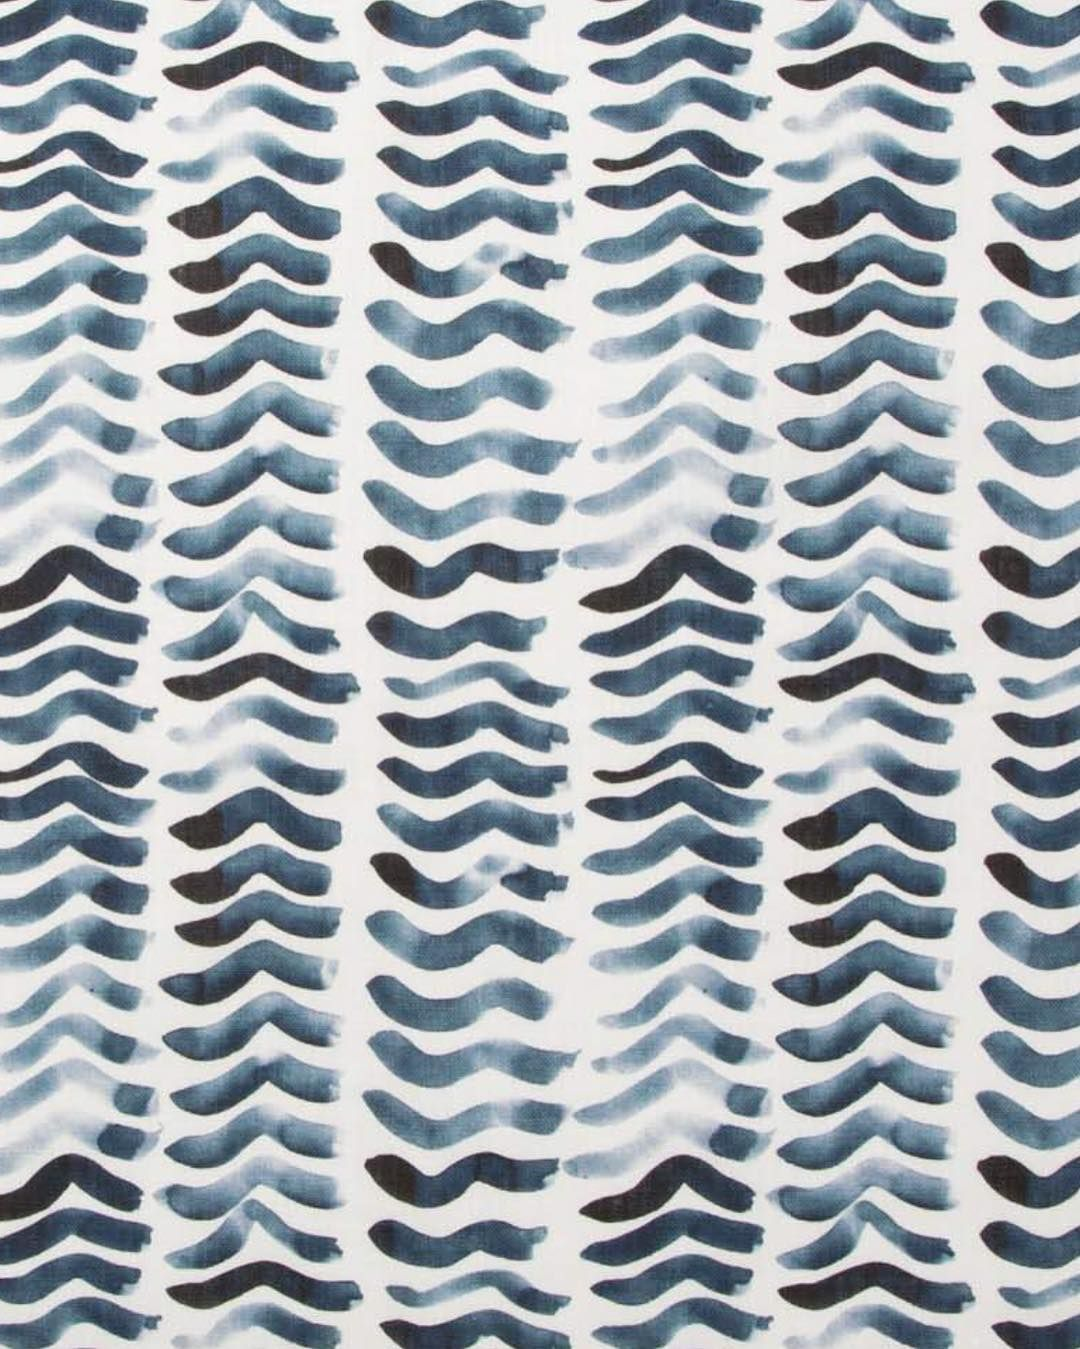 Ripple In Navy Calm Movements And Repetitive Strokes Created This